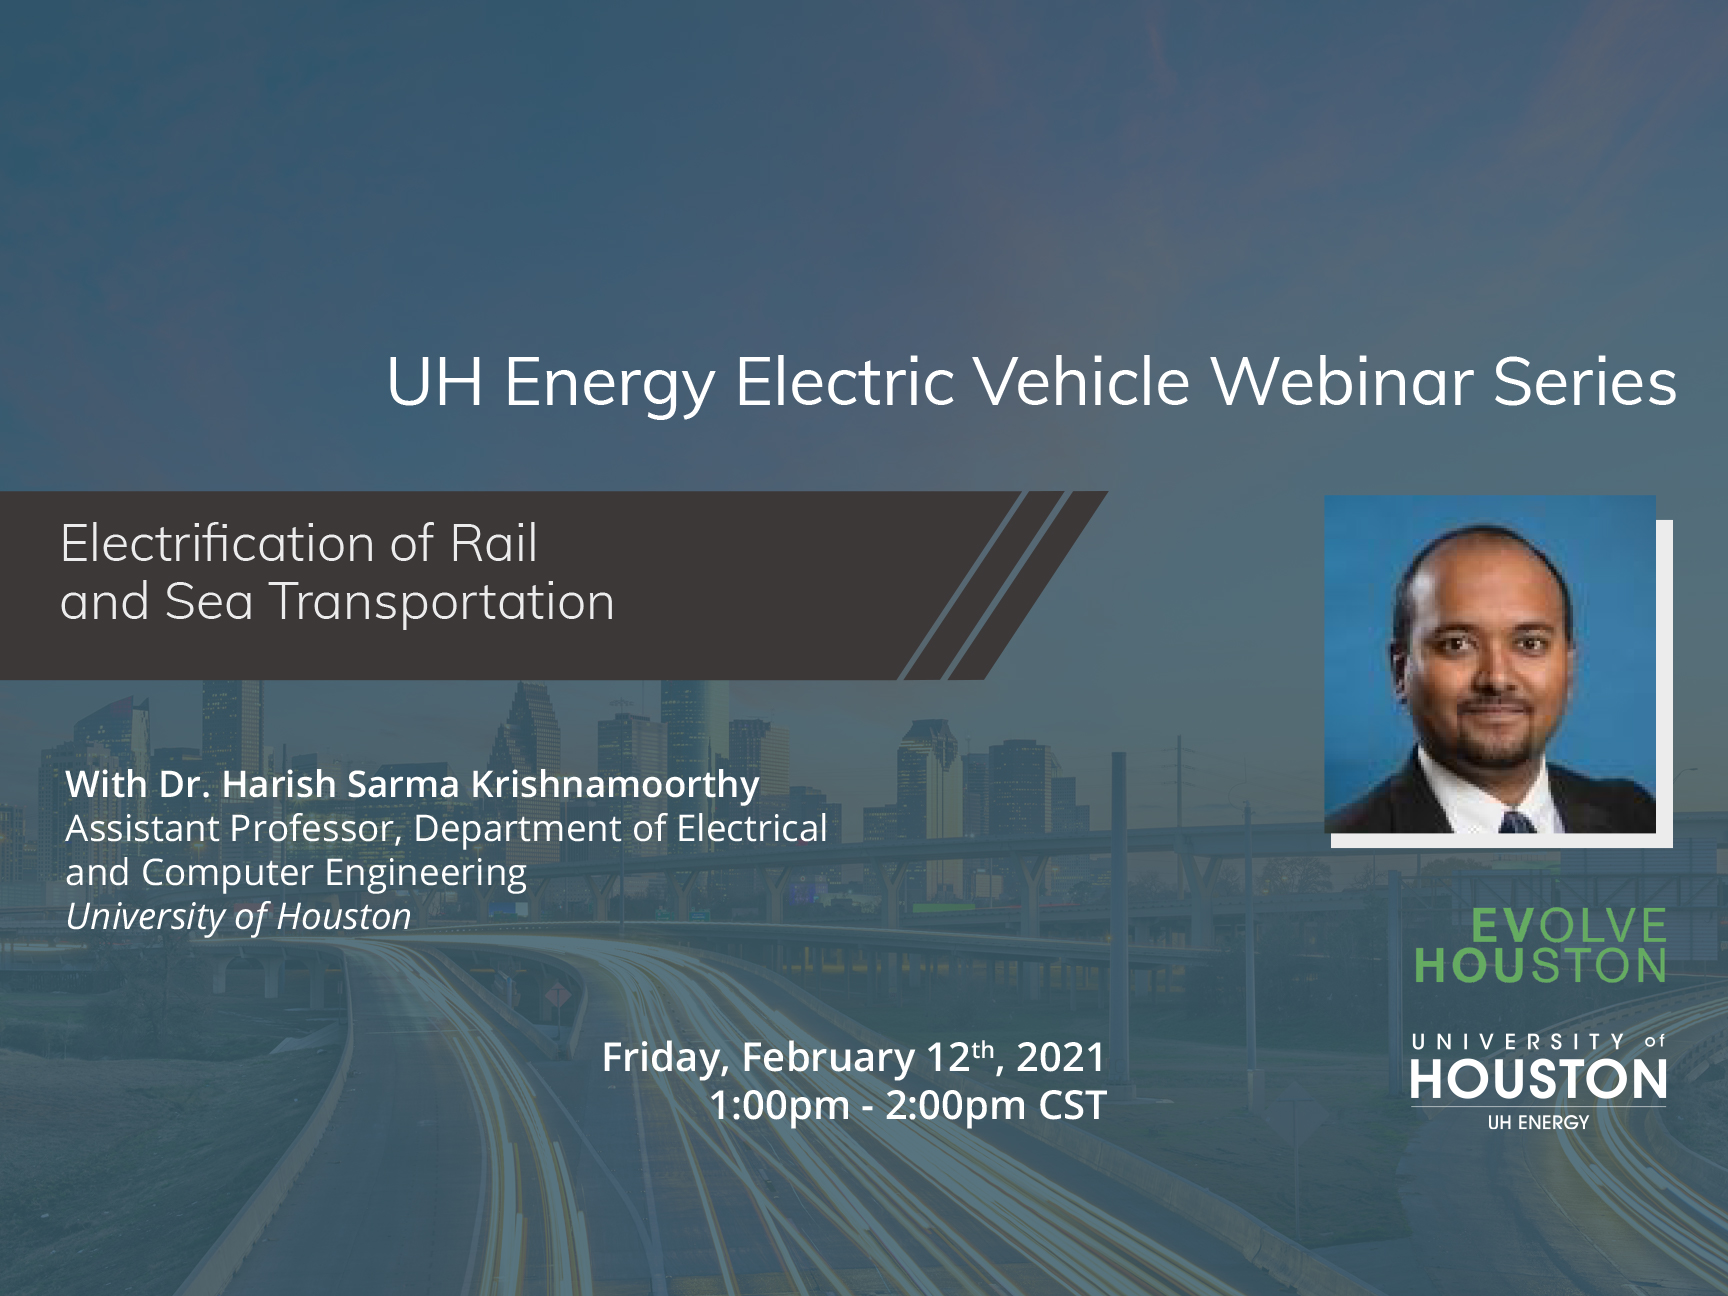 20-21 UH Energy Electric Vehicle Webinar Series - Electrification of Rail and Sea Transportation Image